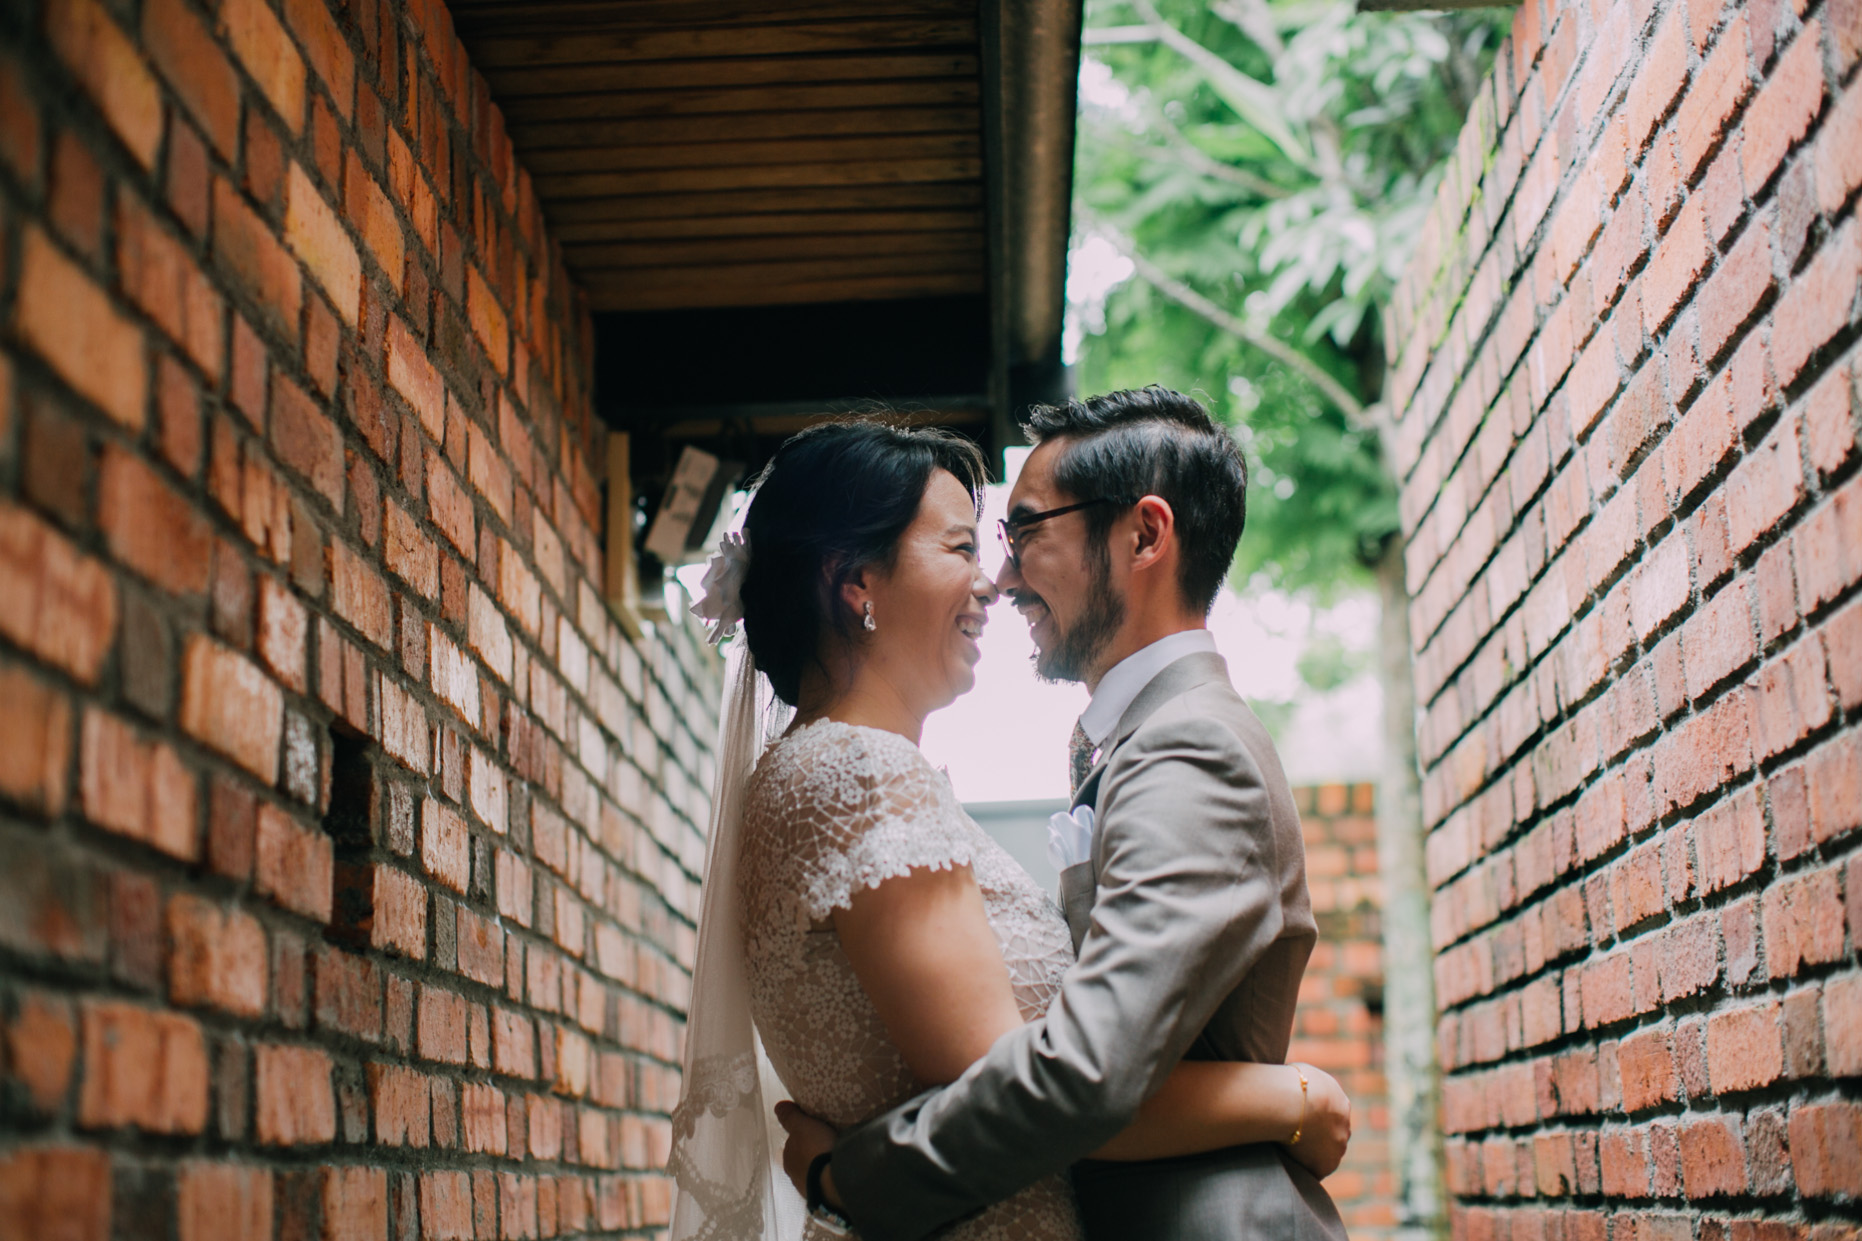 64-hellojanelee-sam grace-malaysia-wedding-day